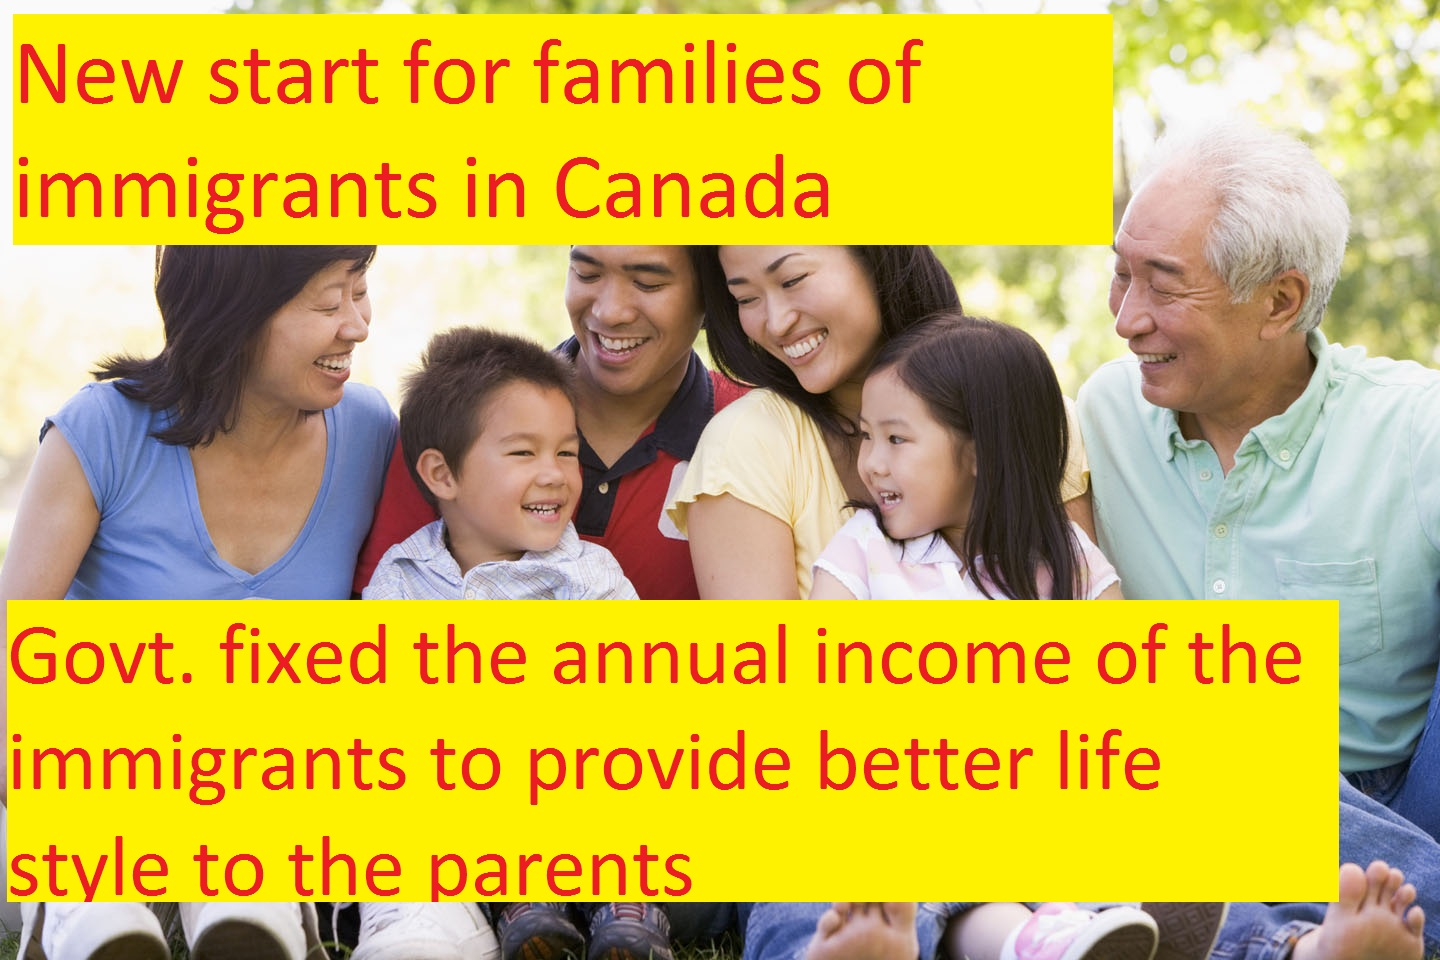 New start for families of immigrants in Canada